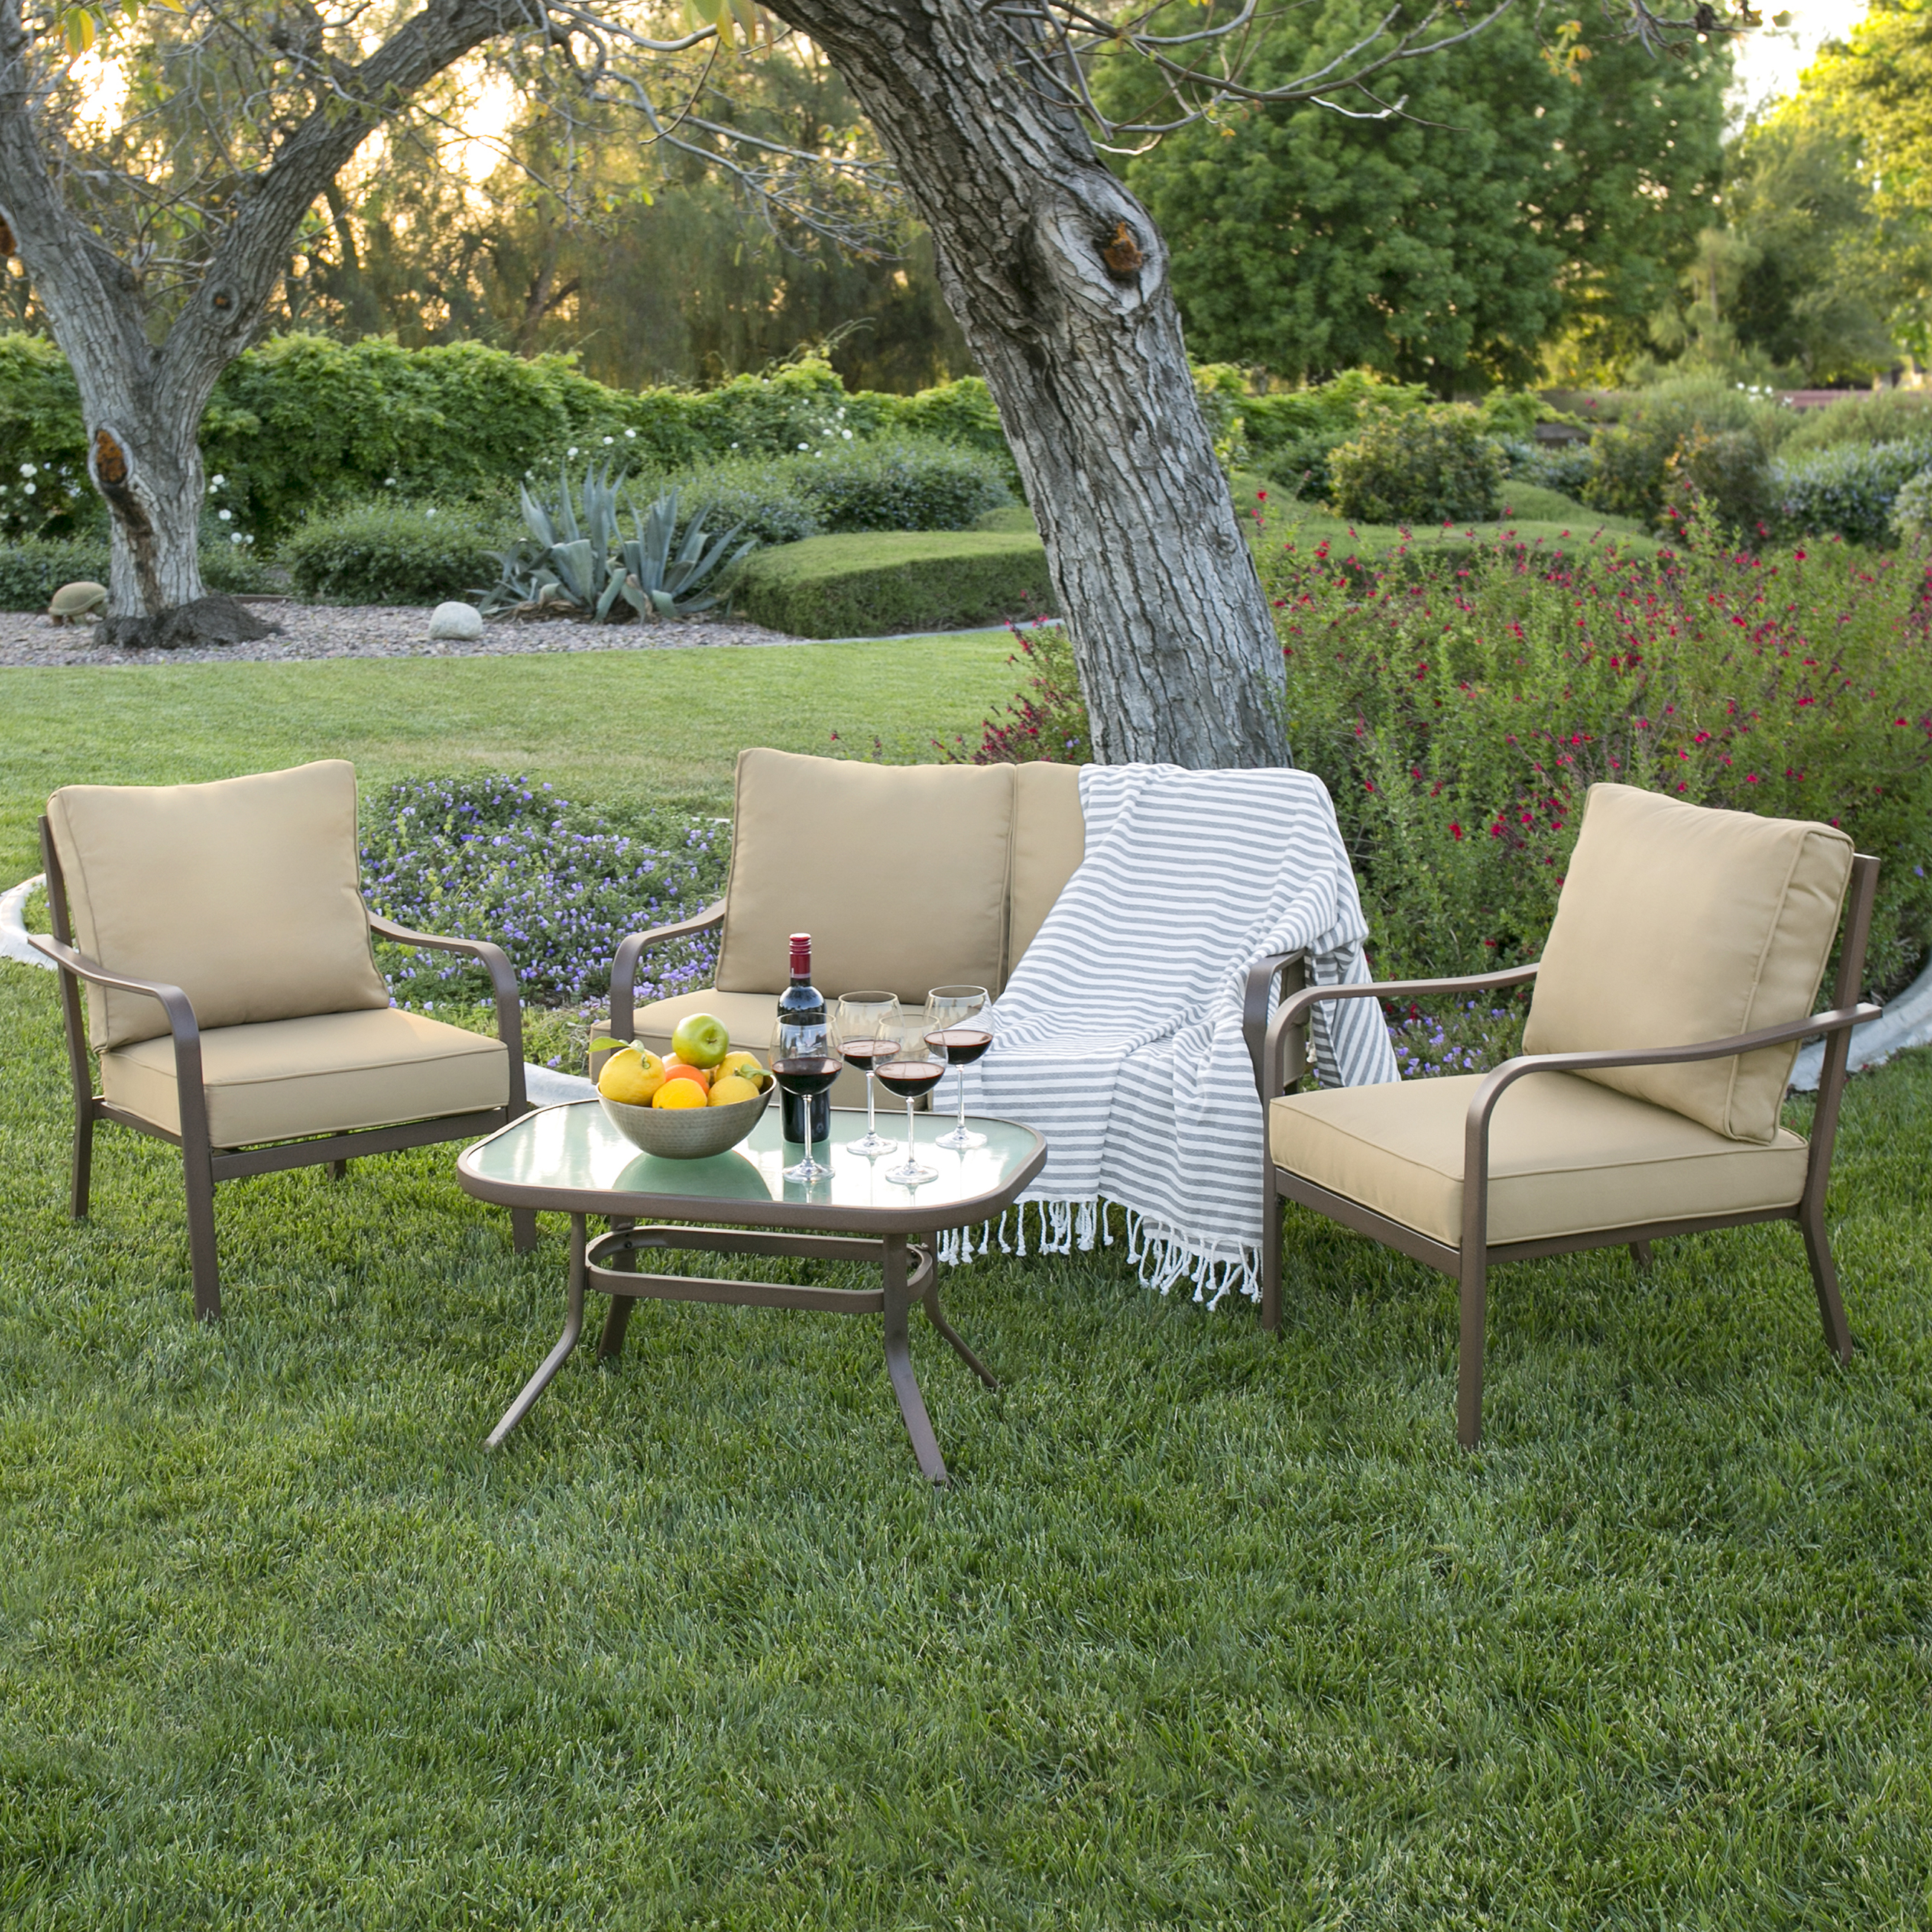 Best Choice Products 4 Piece Cushioned Patio Furniture Set W/ Loveseat, 2  Chairs,